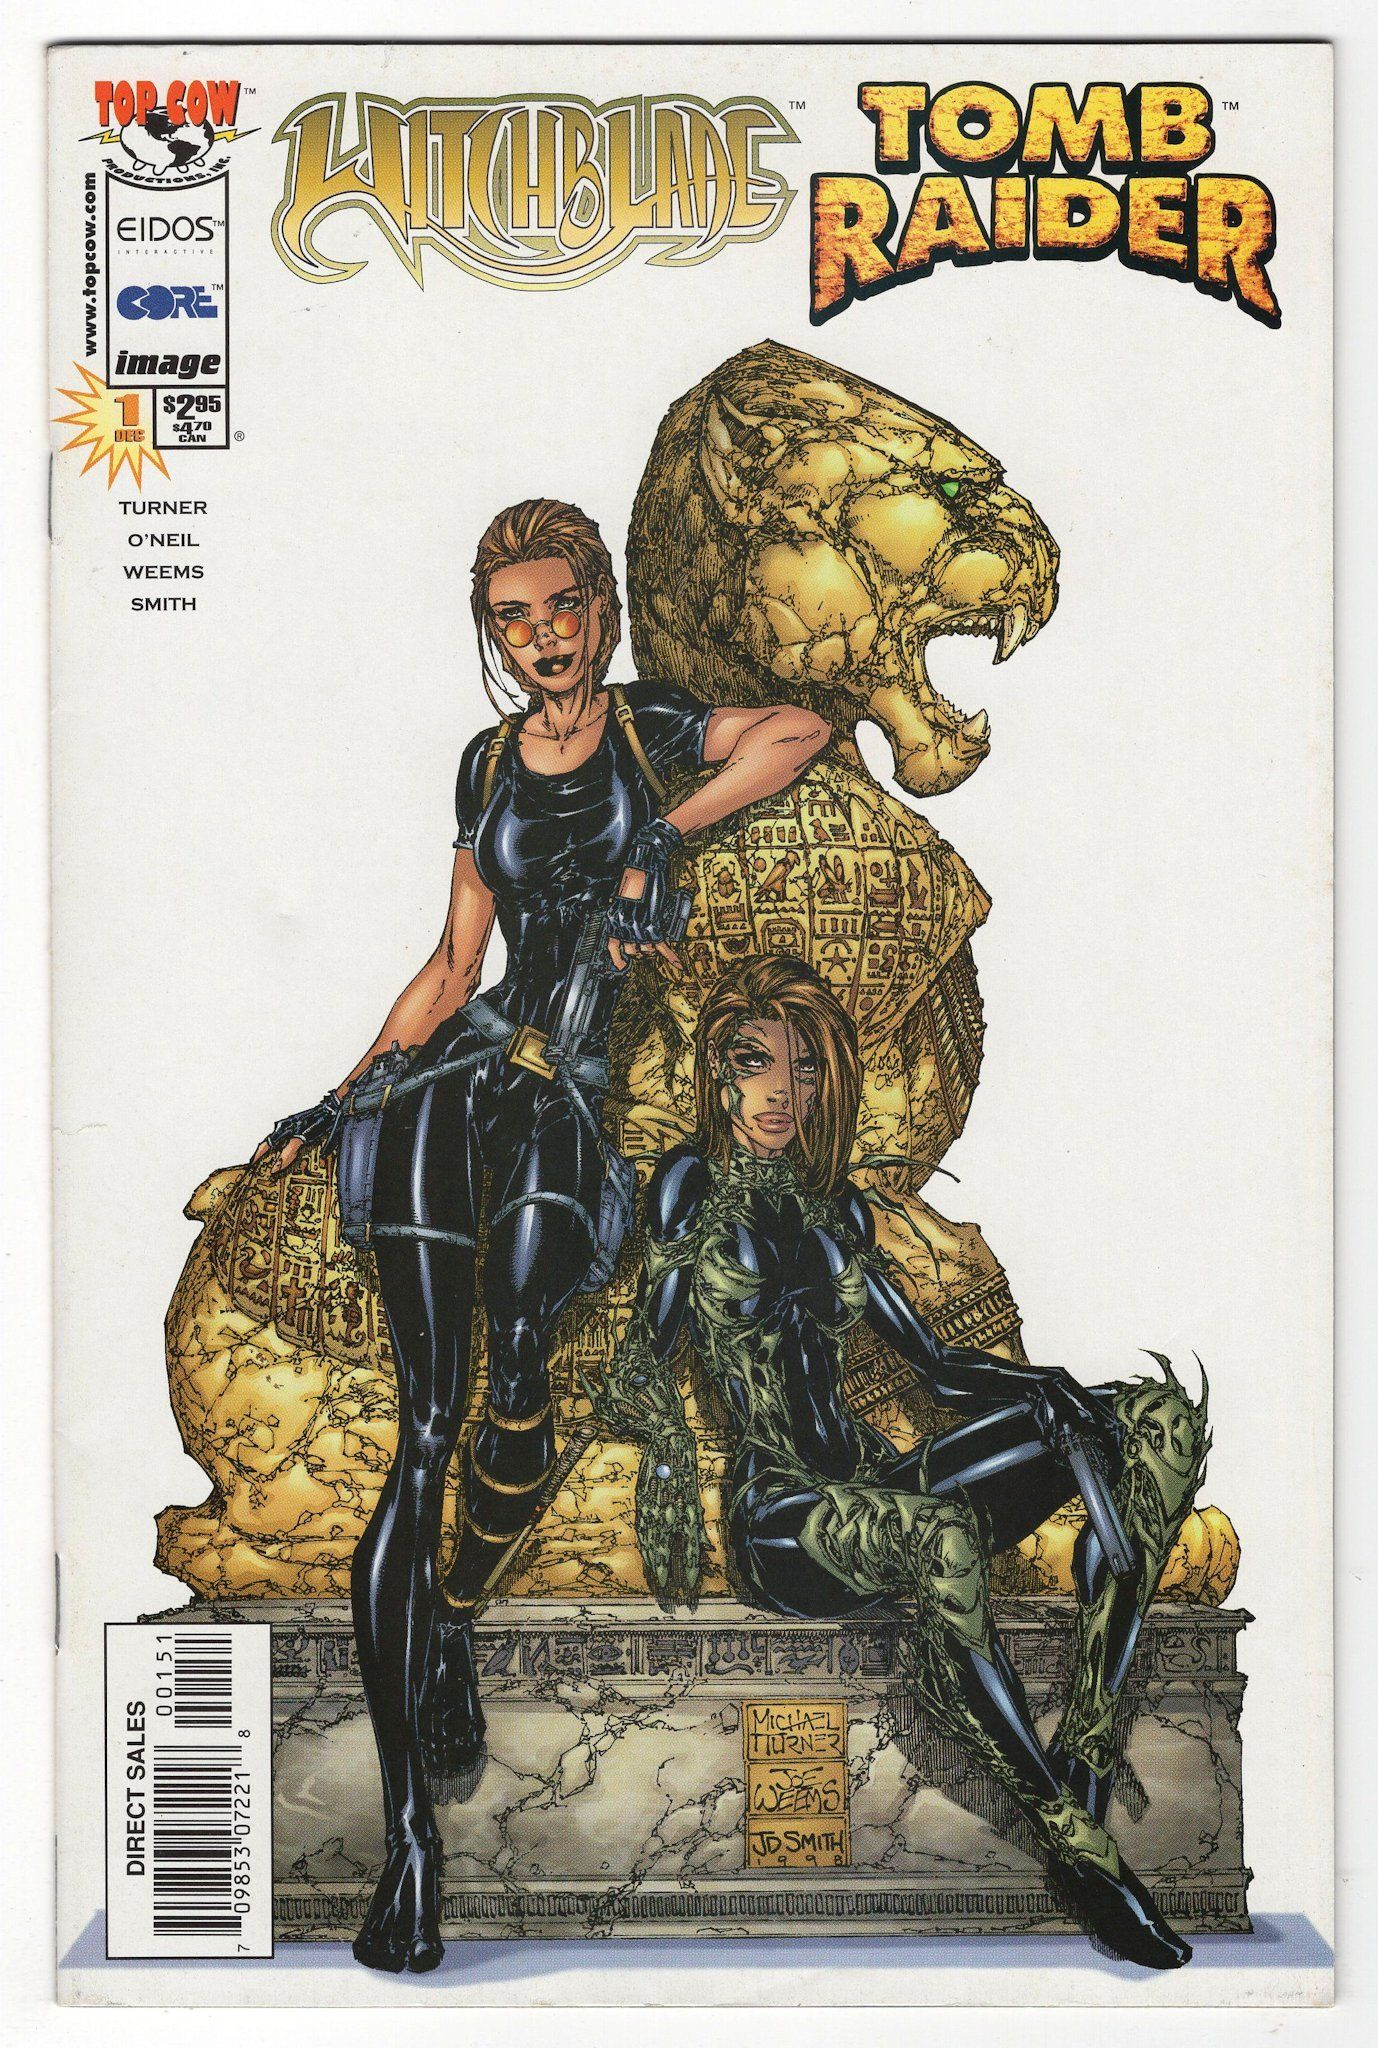 Witchblade Tomb Raider 1 Michael Turner Variant Cover 1998